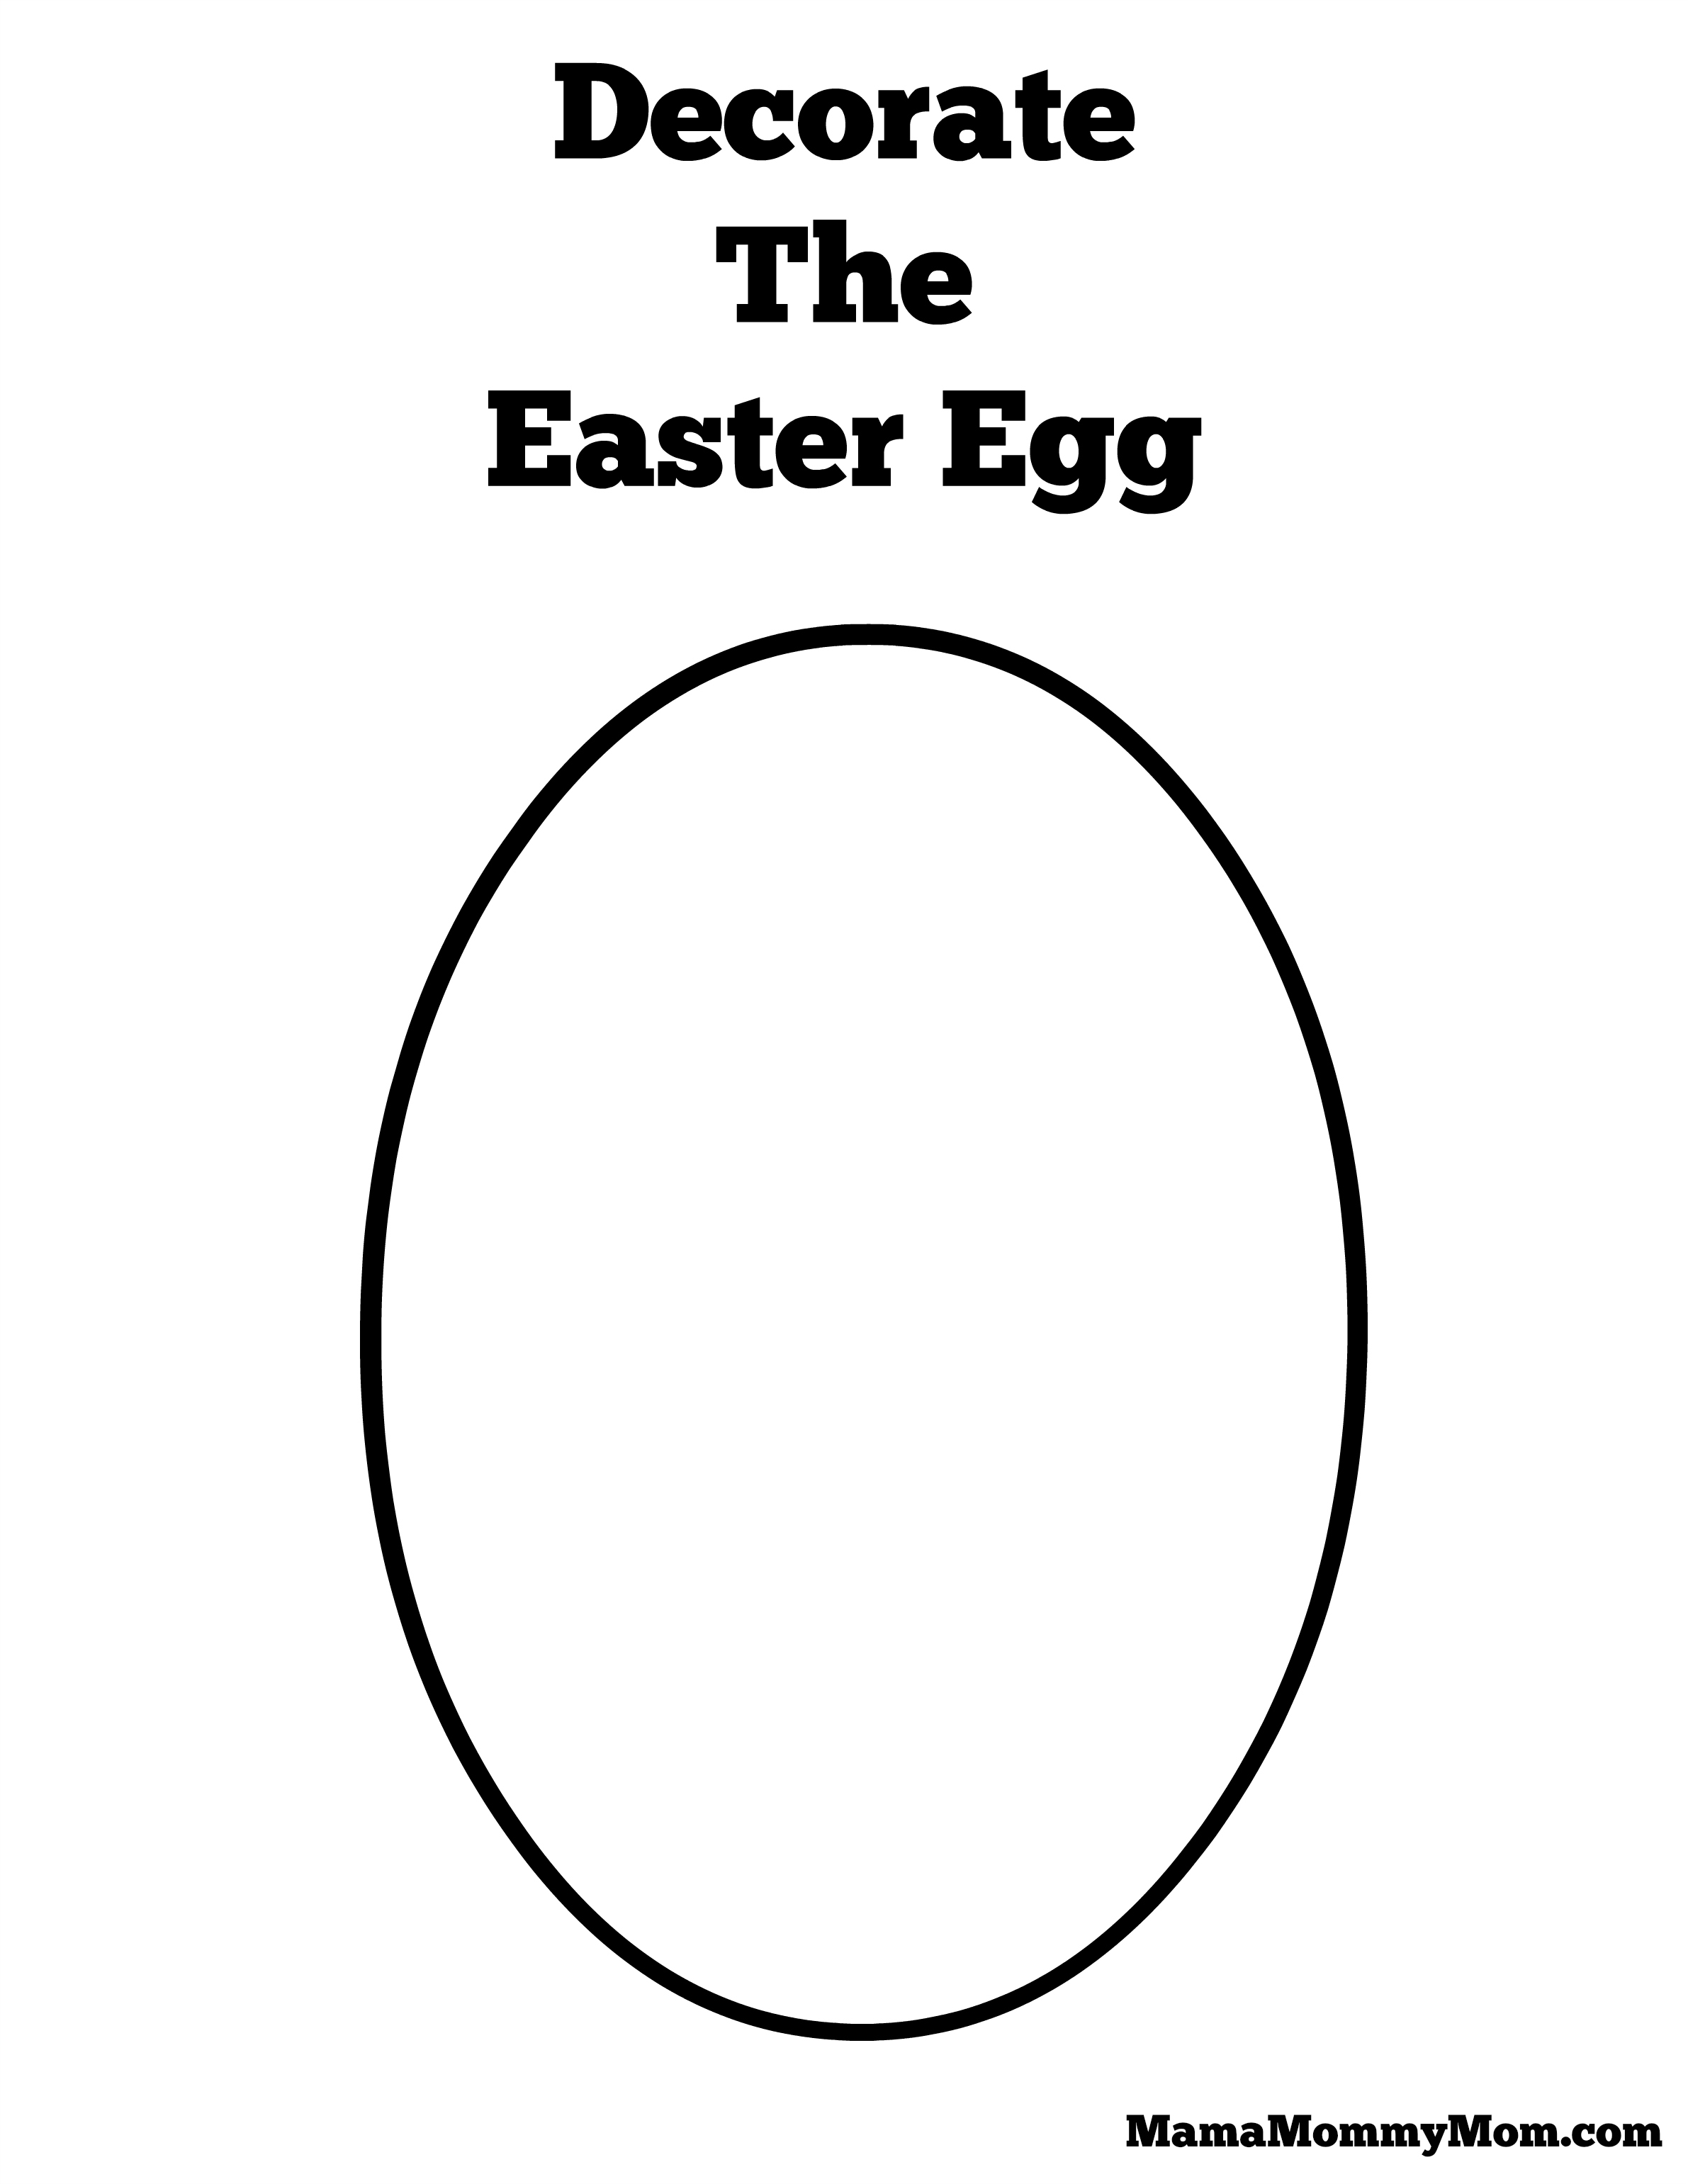 coloring pages easter eggs to decorate easter eggs printable templates coloring pages easter decorate pages eggs to coloring